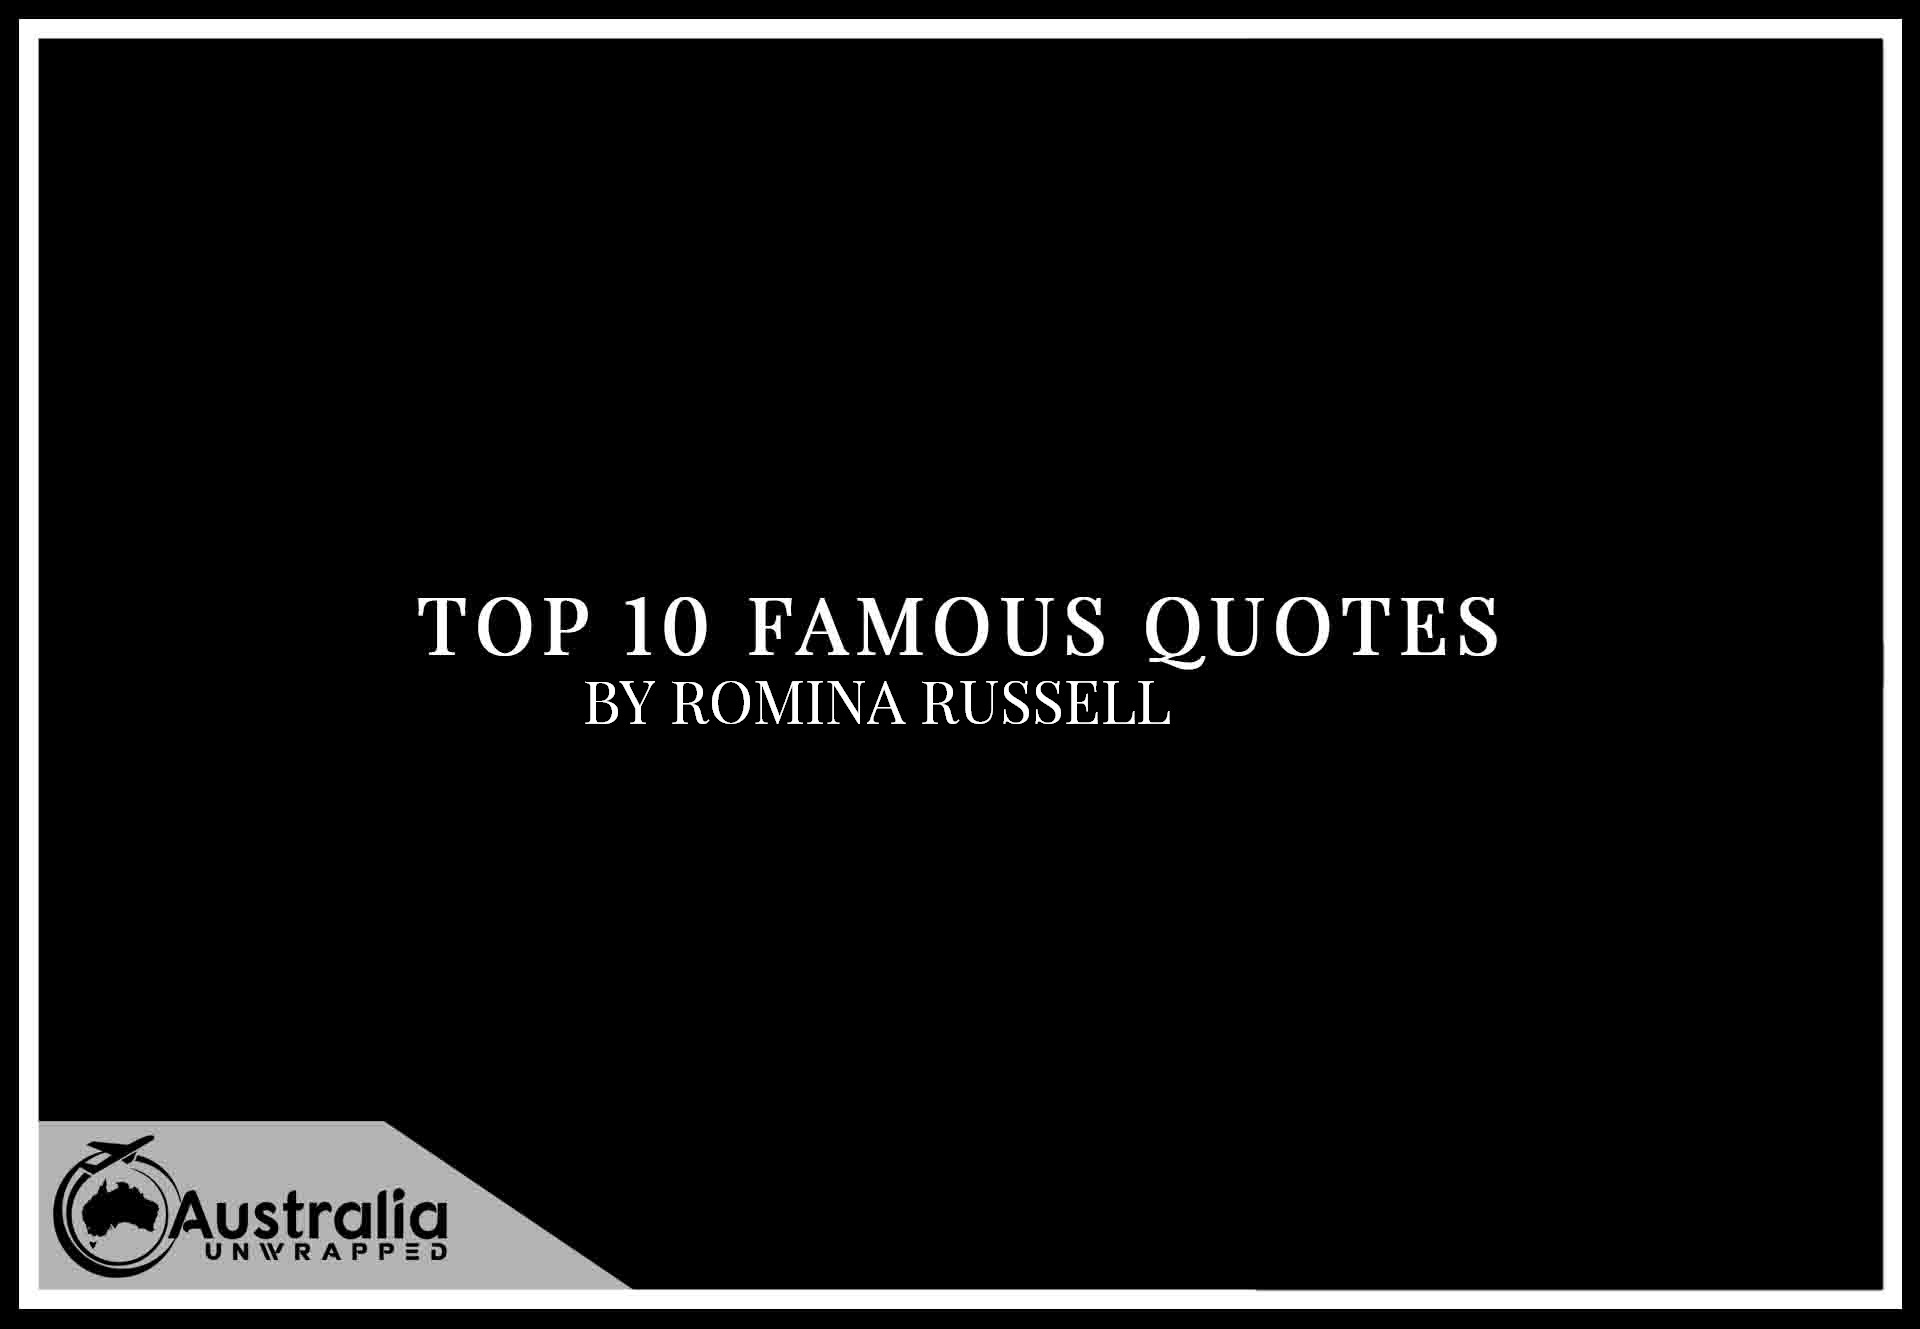 Top 10 Famous Quotes by Author Romina Russell